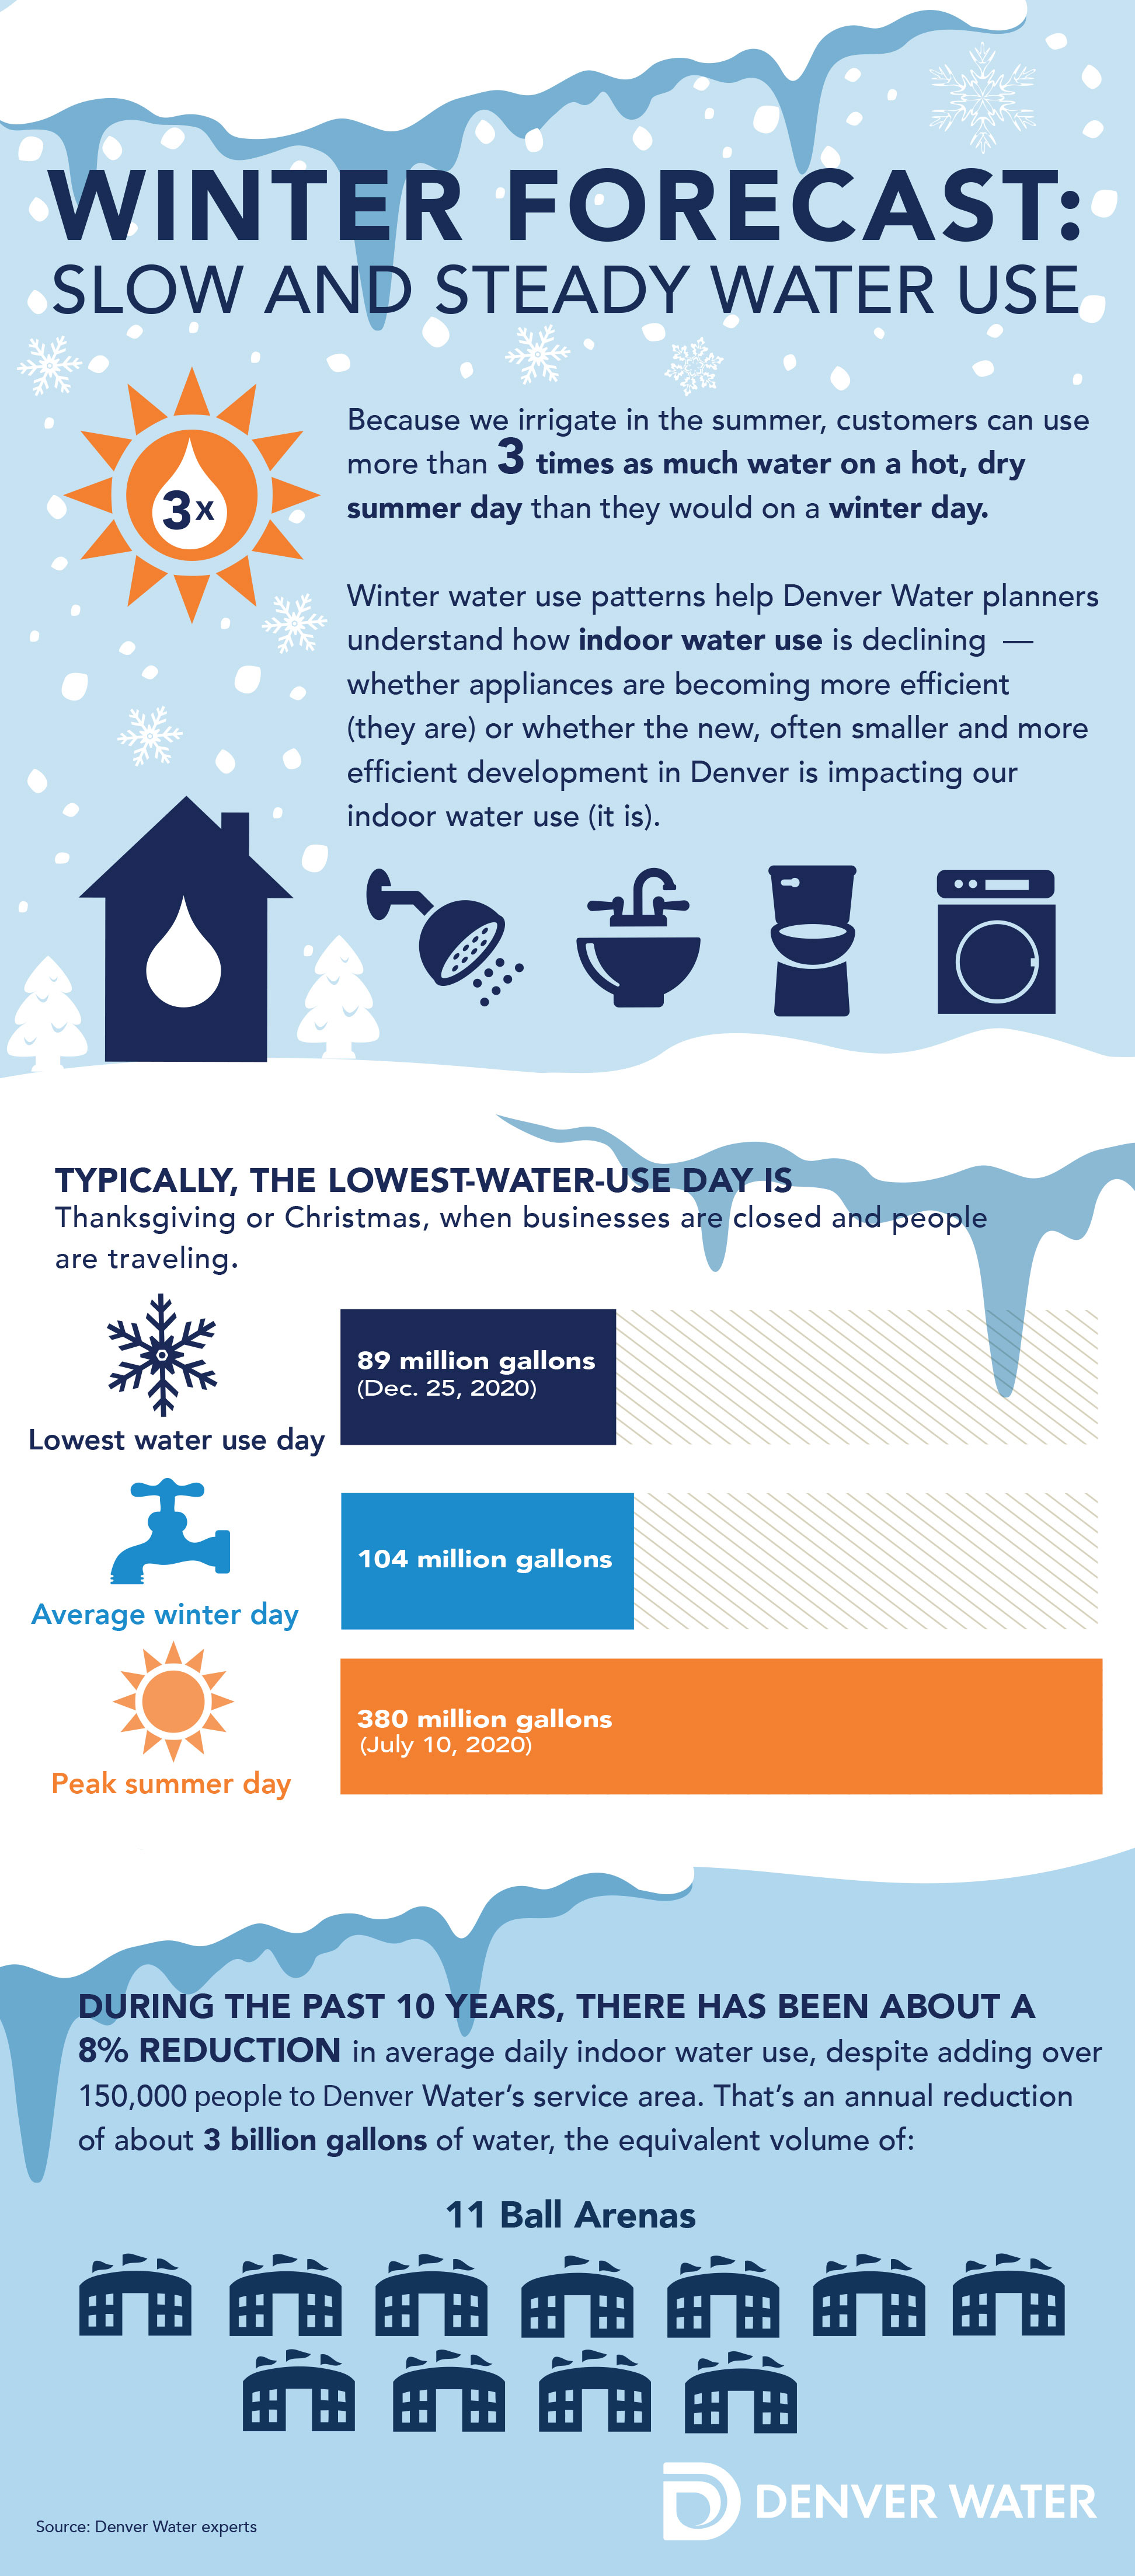 Winter forecast: slow and steady water use infographic.